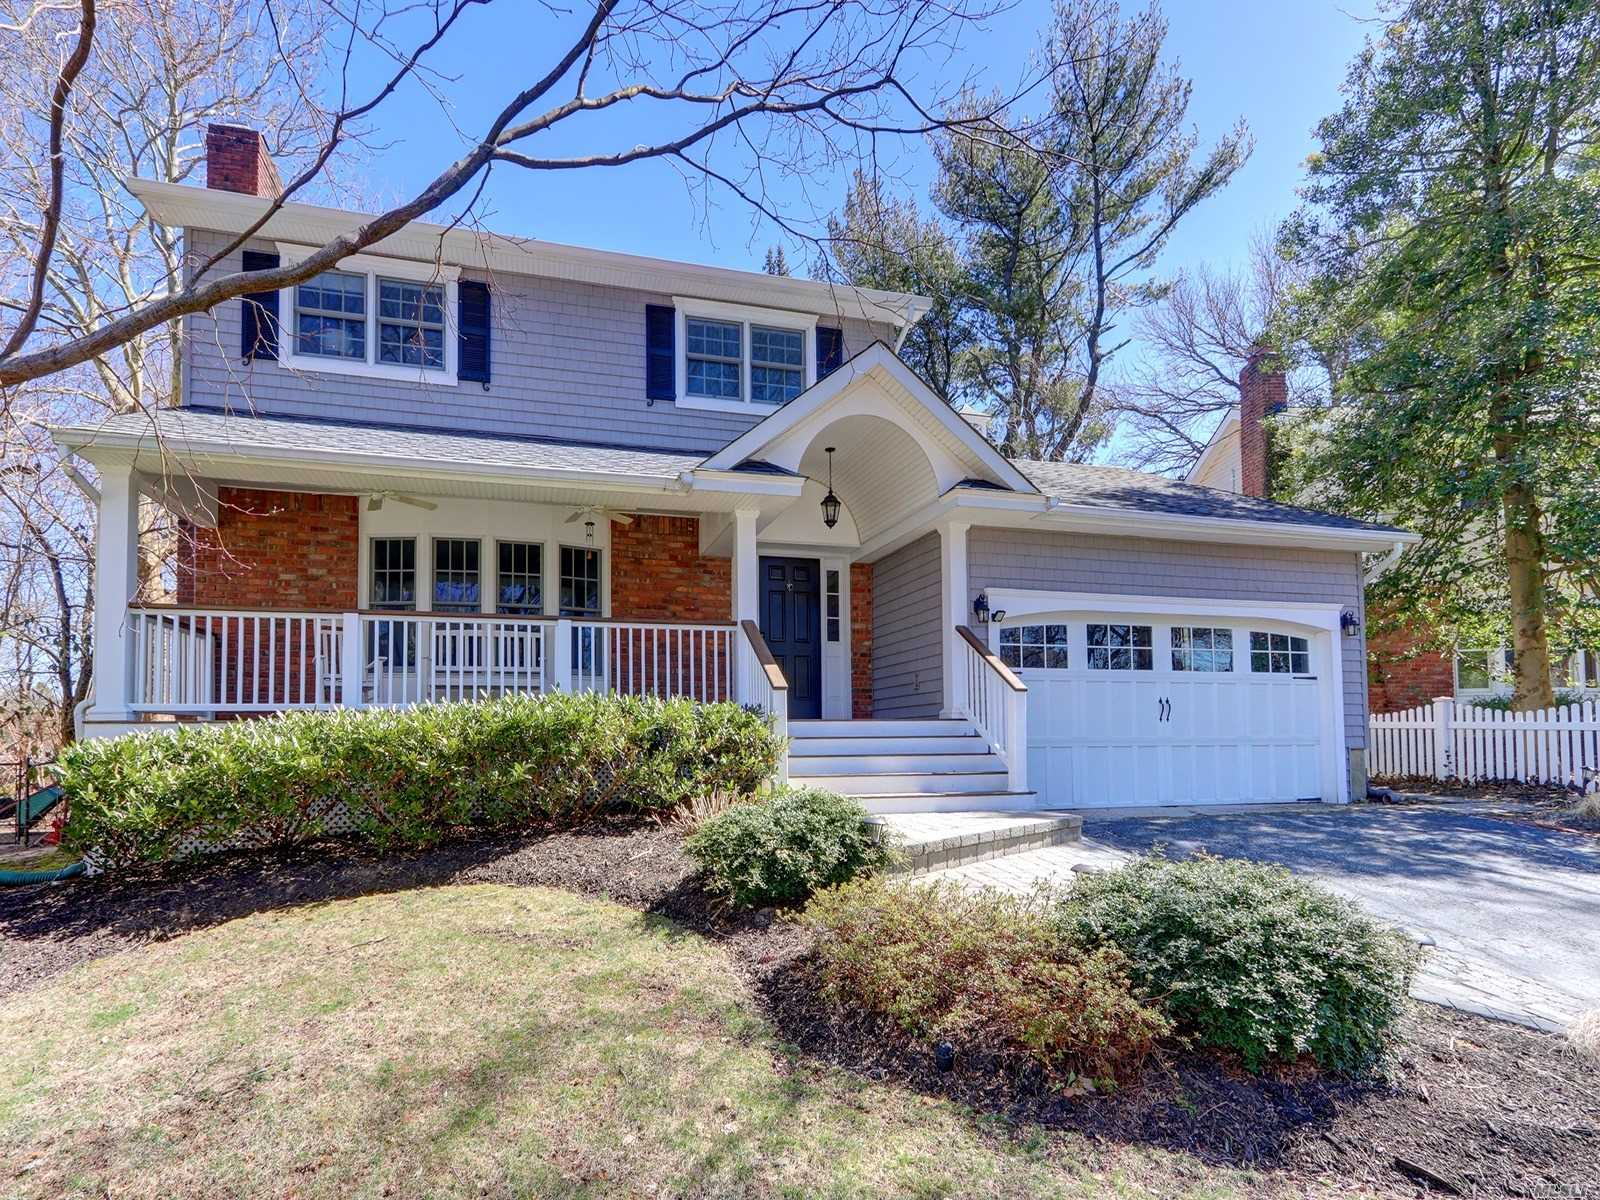 Beautiful Mint+ Colonial w/front porch, .20 flat acre/usable property on cue-de-sac in the highly acclaimed and sought after Harborfields SD#6! Master w/new bath, new granite EIK, formal dining room or Den, Family room with wood fpl and white crafted mantle, double pane Andersen windows, ductless mini split CAC, IGS, new shed, wood floors, crown molding, full bsmt, 2 car garage.Minutes from Cntrprt, Npt, & Hntngtn Villages-all with its charm, fine restaurants, boutique shops and beaches!LIRR/NYC/1HR